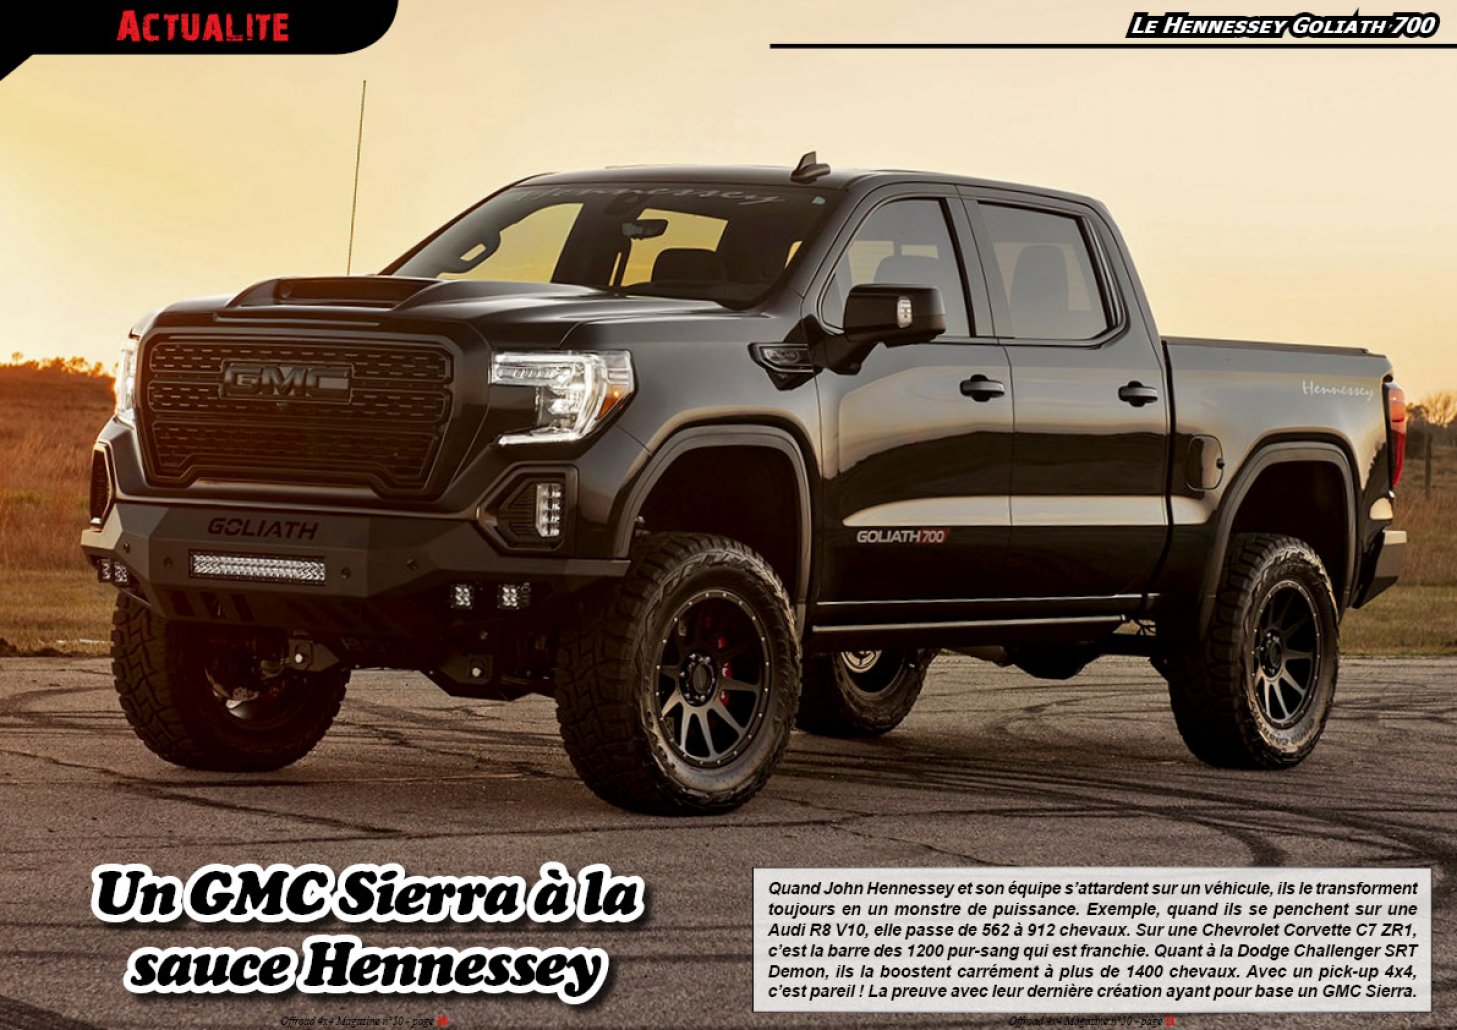 Le Hennessey Goliath 700